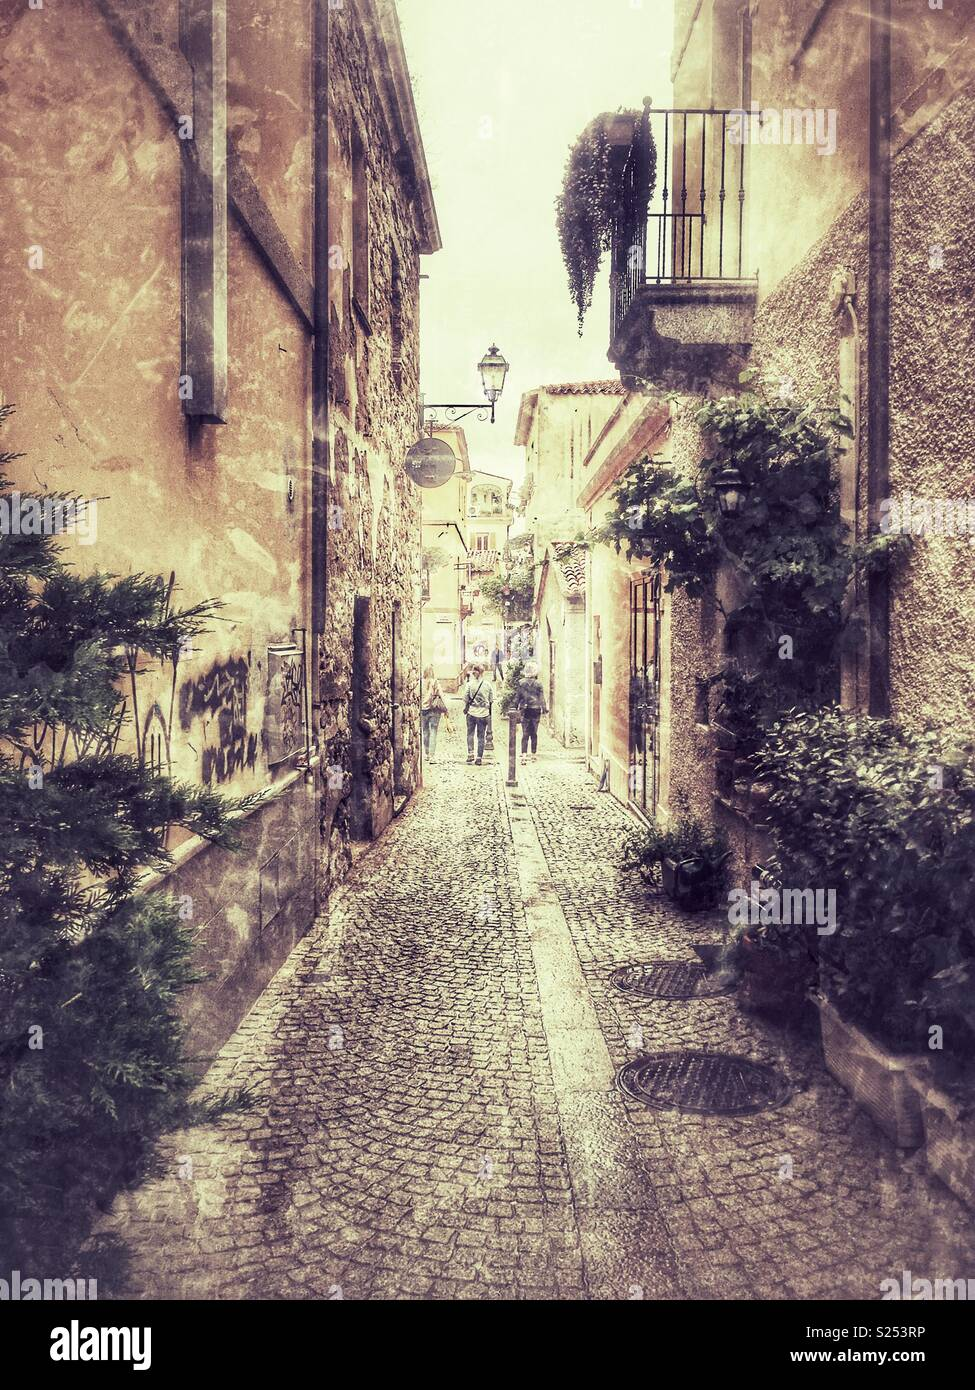 City centre in Olbia, Sardinia - Stock Image